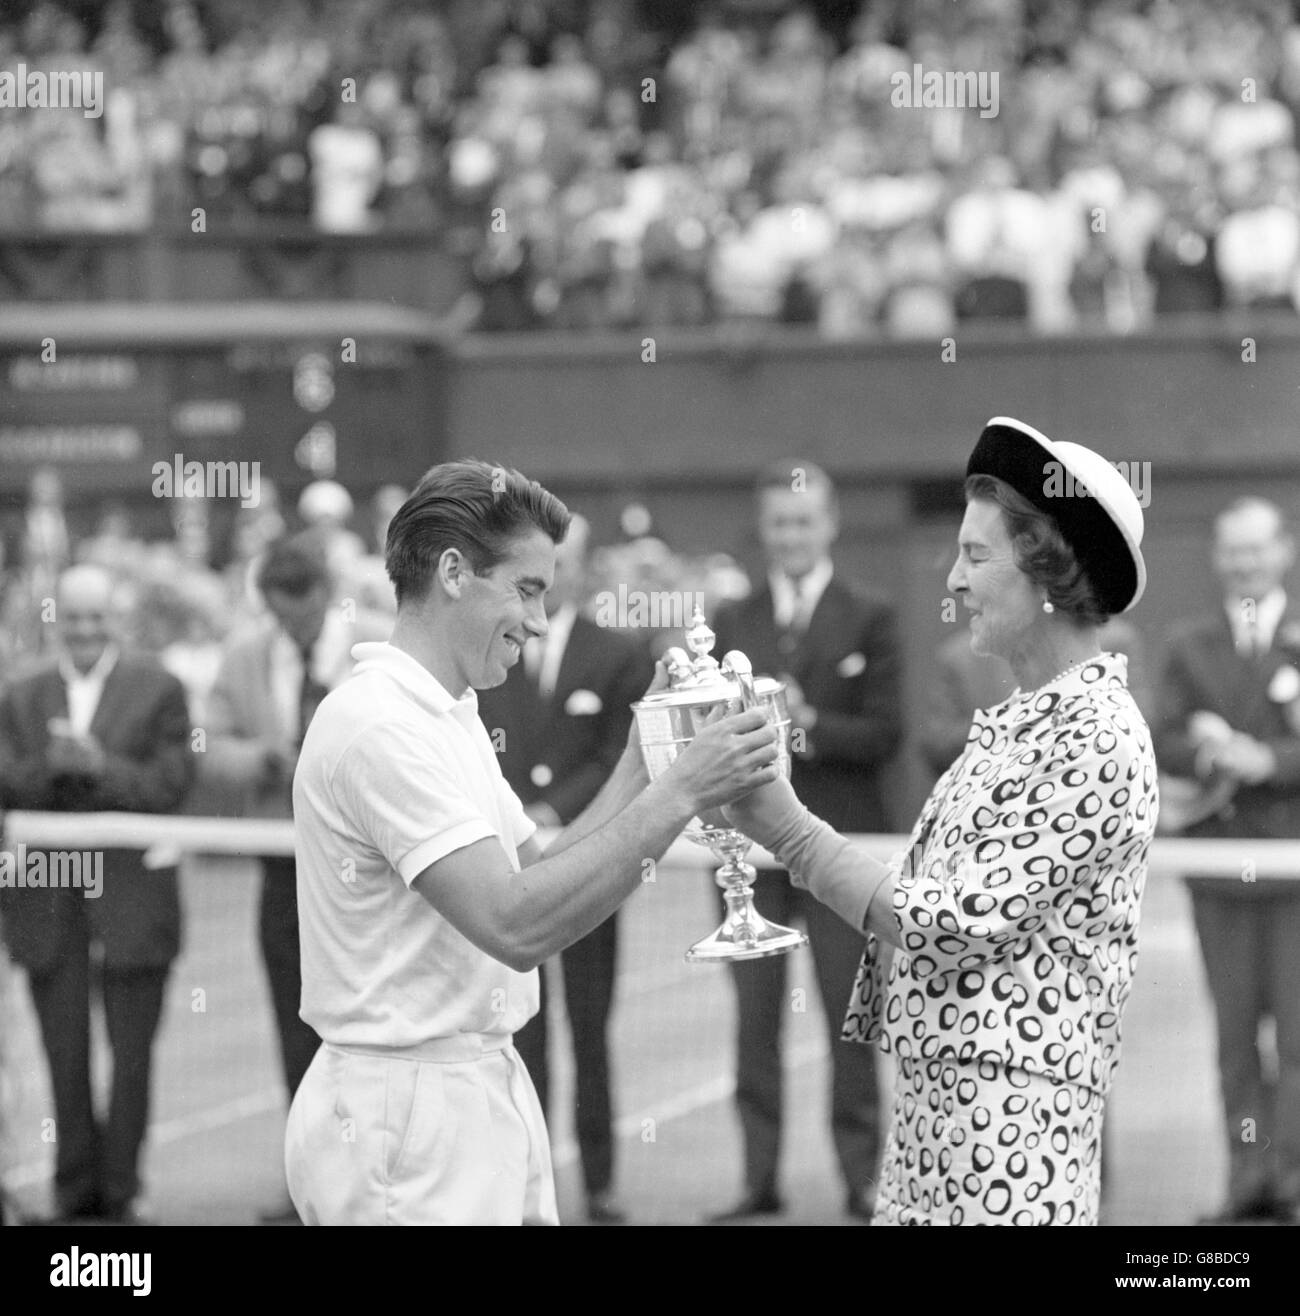 Centre Court Wimbledon Black and White Stock s & Alamy